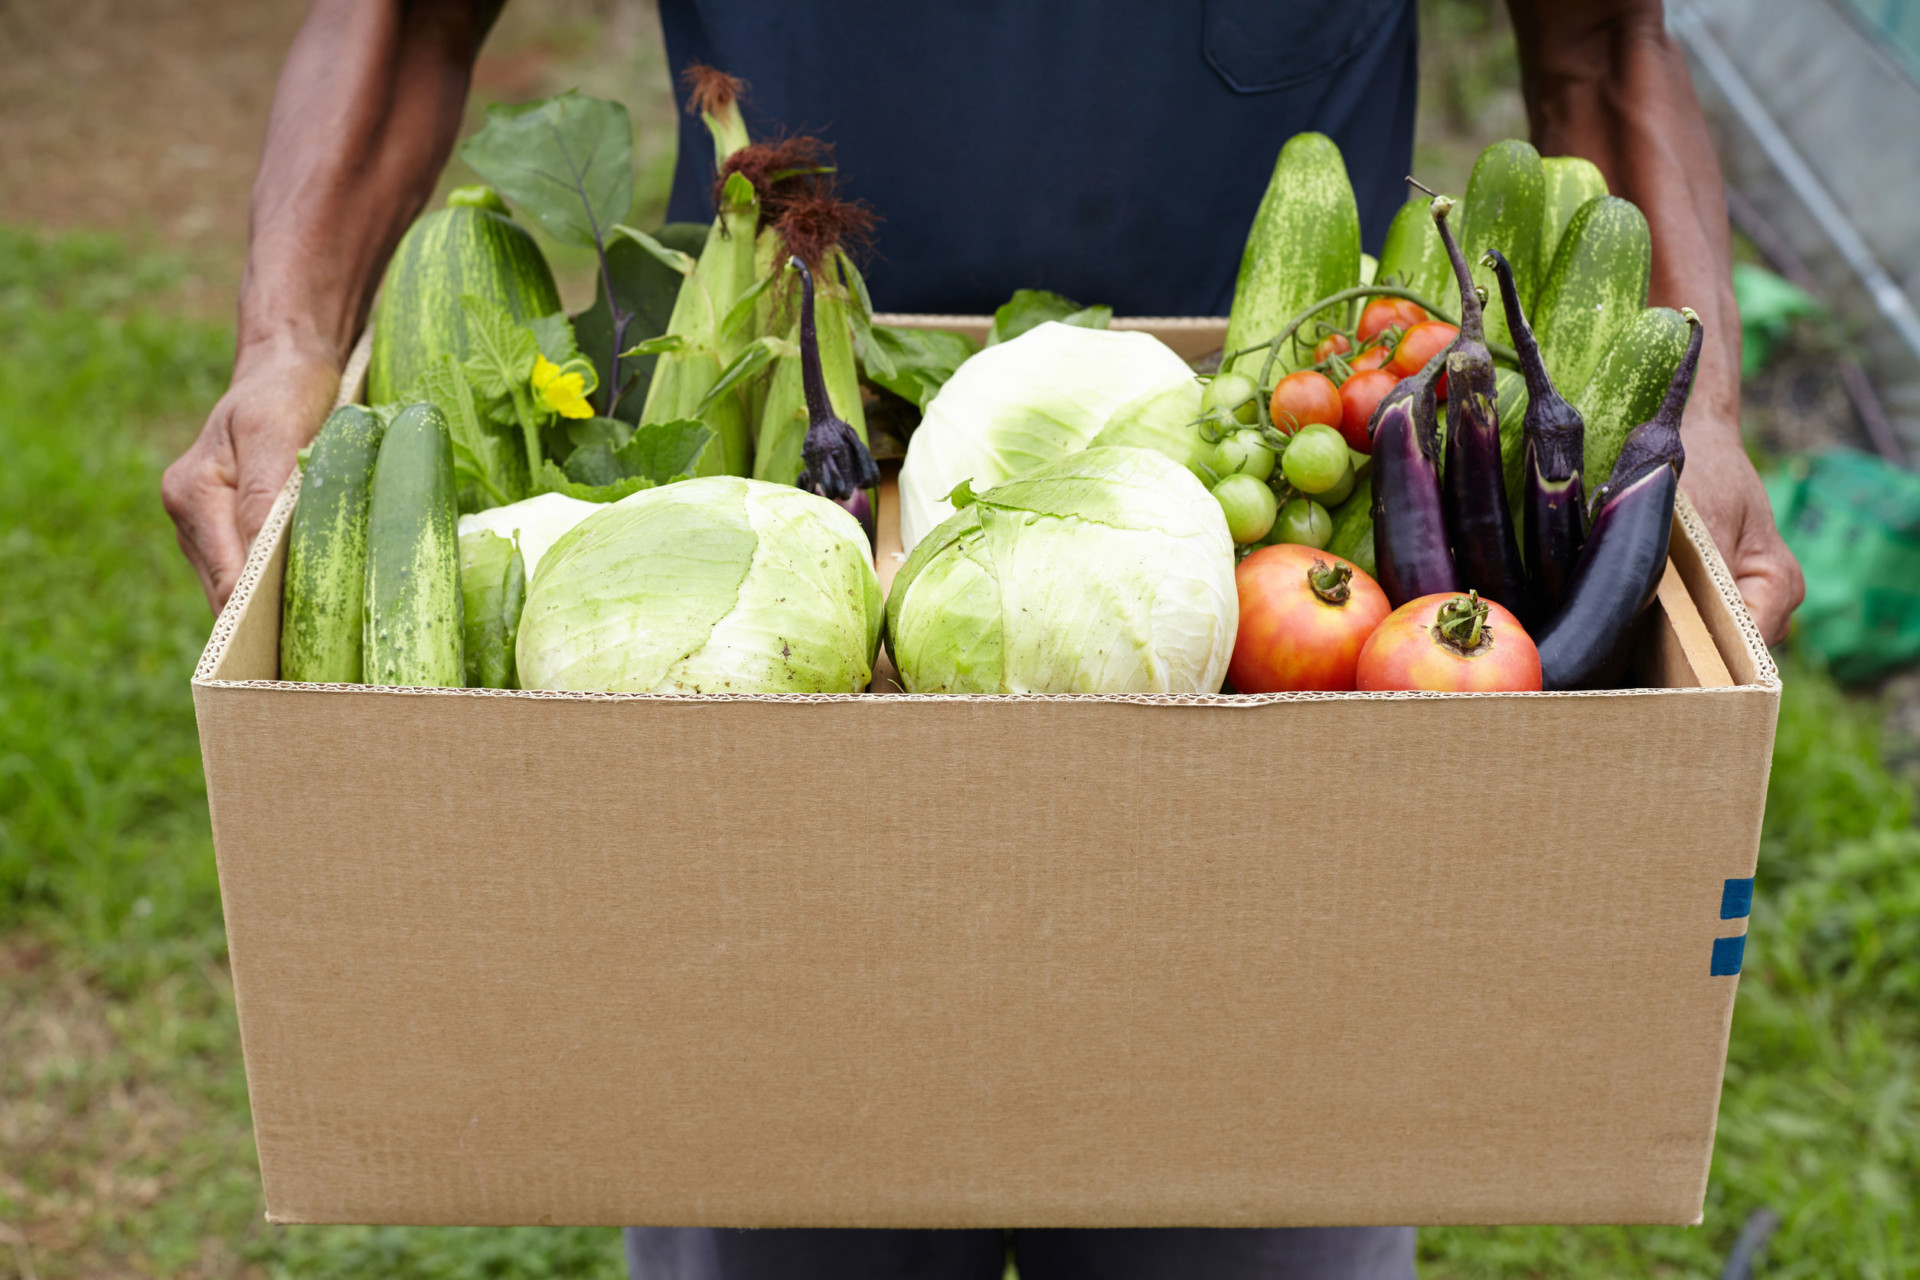 box filled fresh vegetables - community food drive